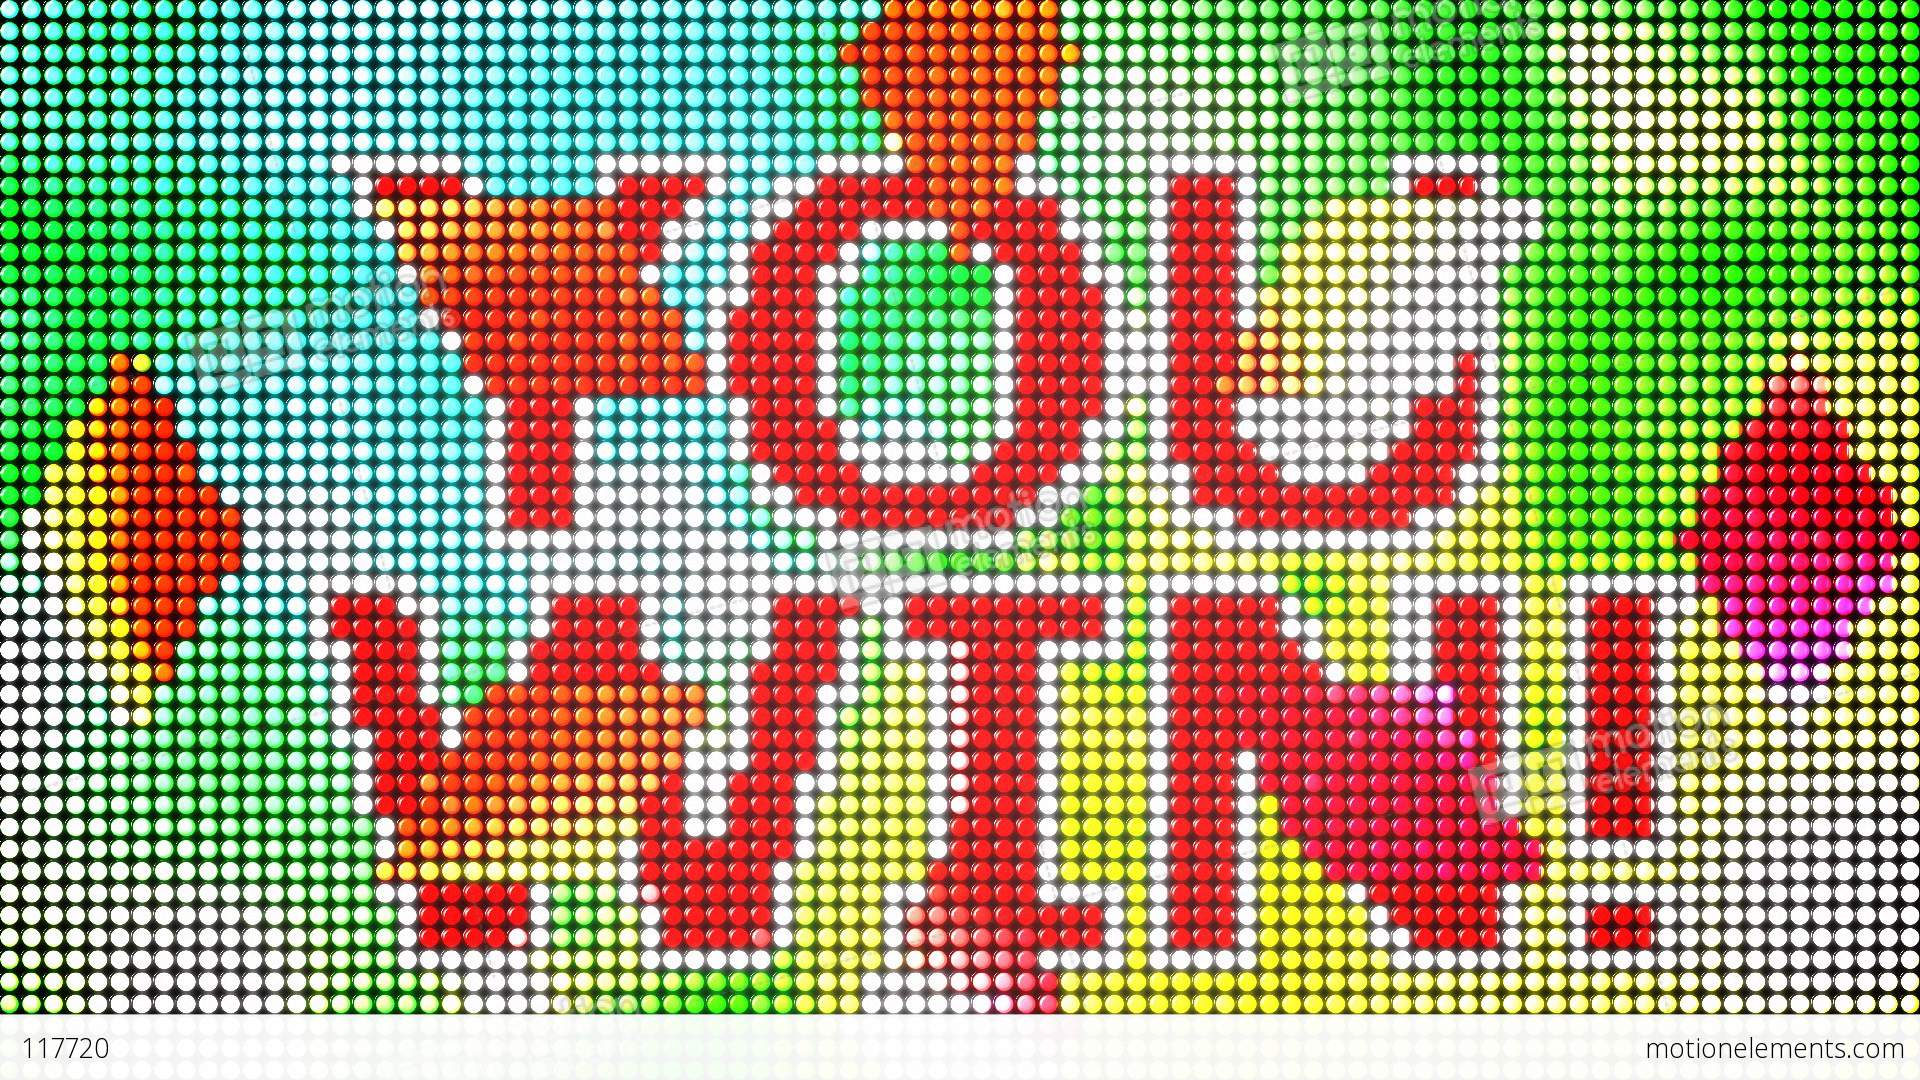 You- You Win Led Screen Loop Stock Animation 117720